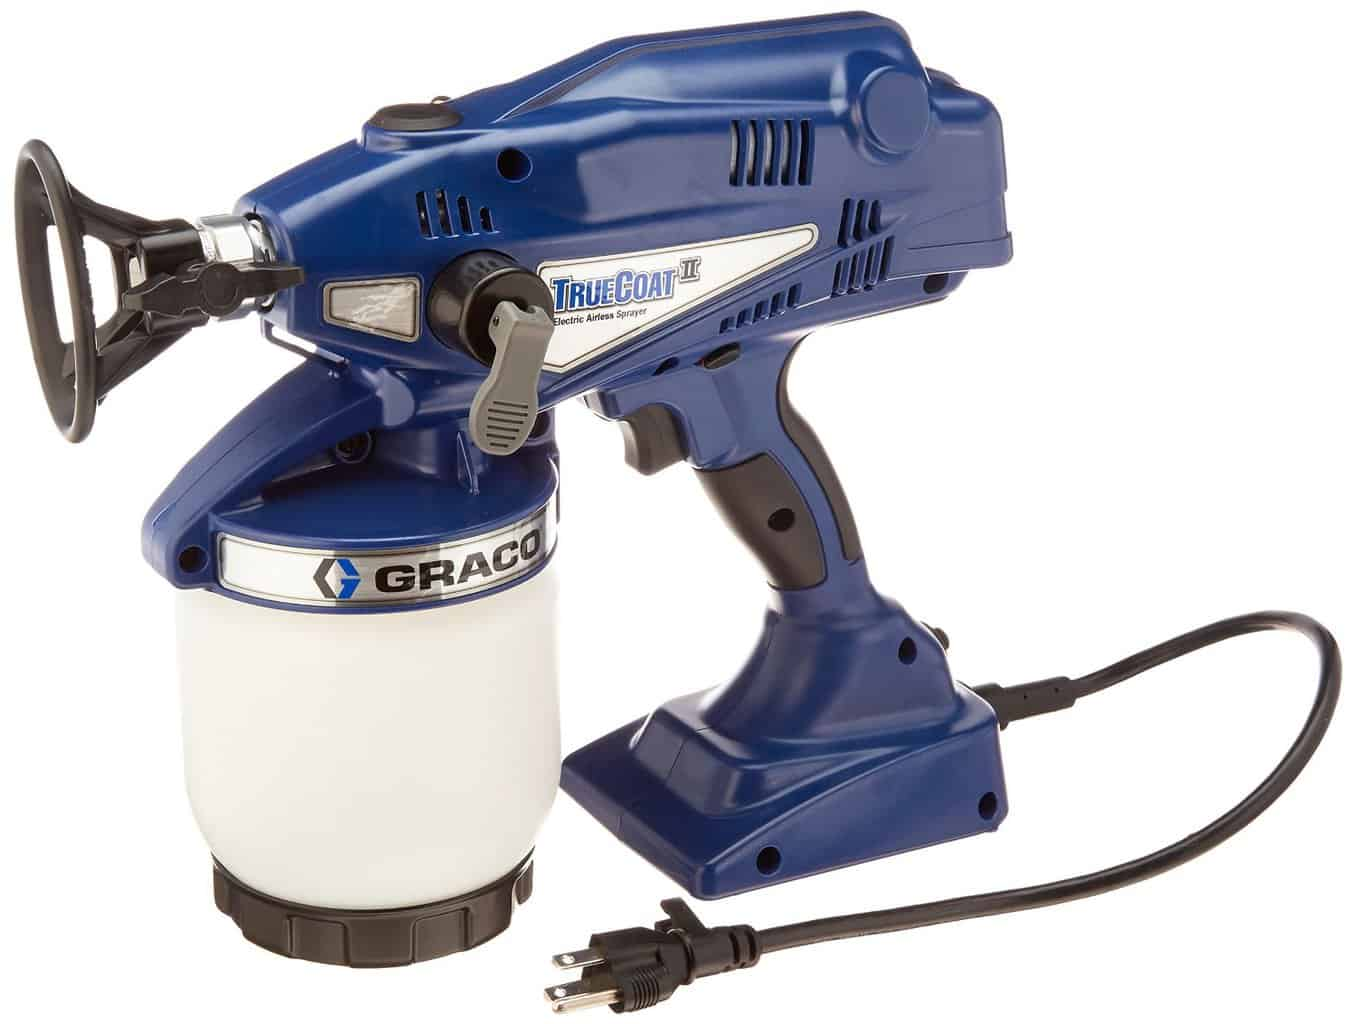 Graco 16N658 TrueCoat II Paint Sprayer